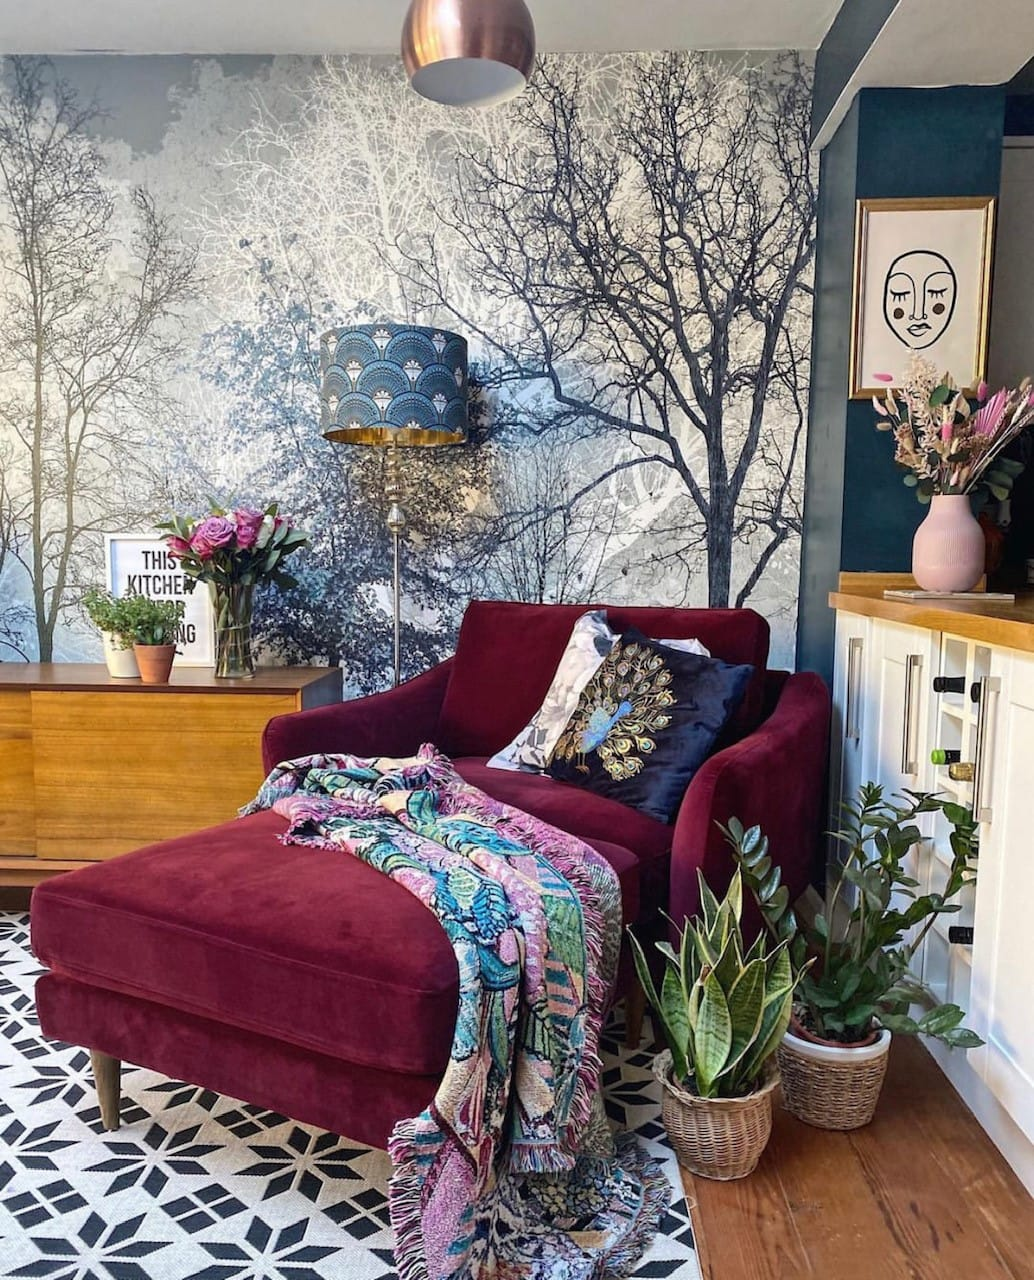 mulled wine deep burgundy velvet sofa in the kitchen diner with forest wallpaper mural, mid century furniture and ikea rug